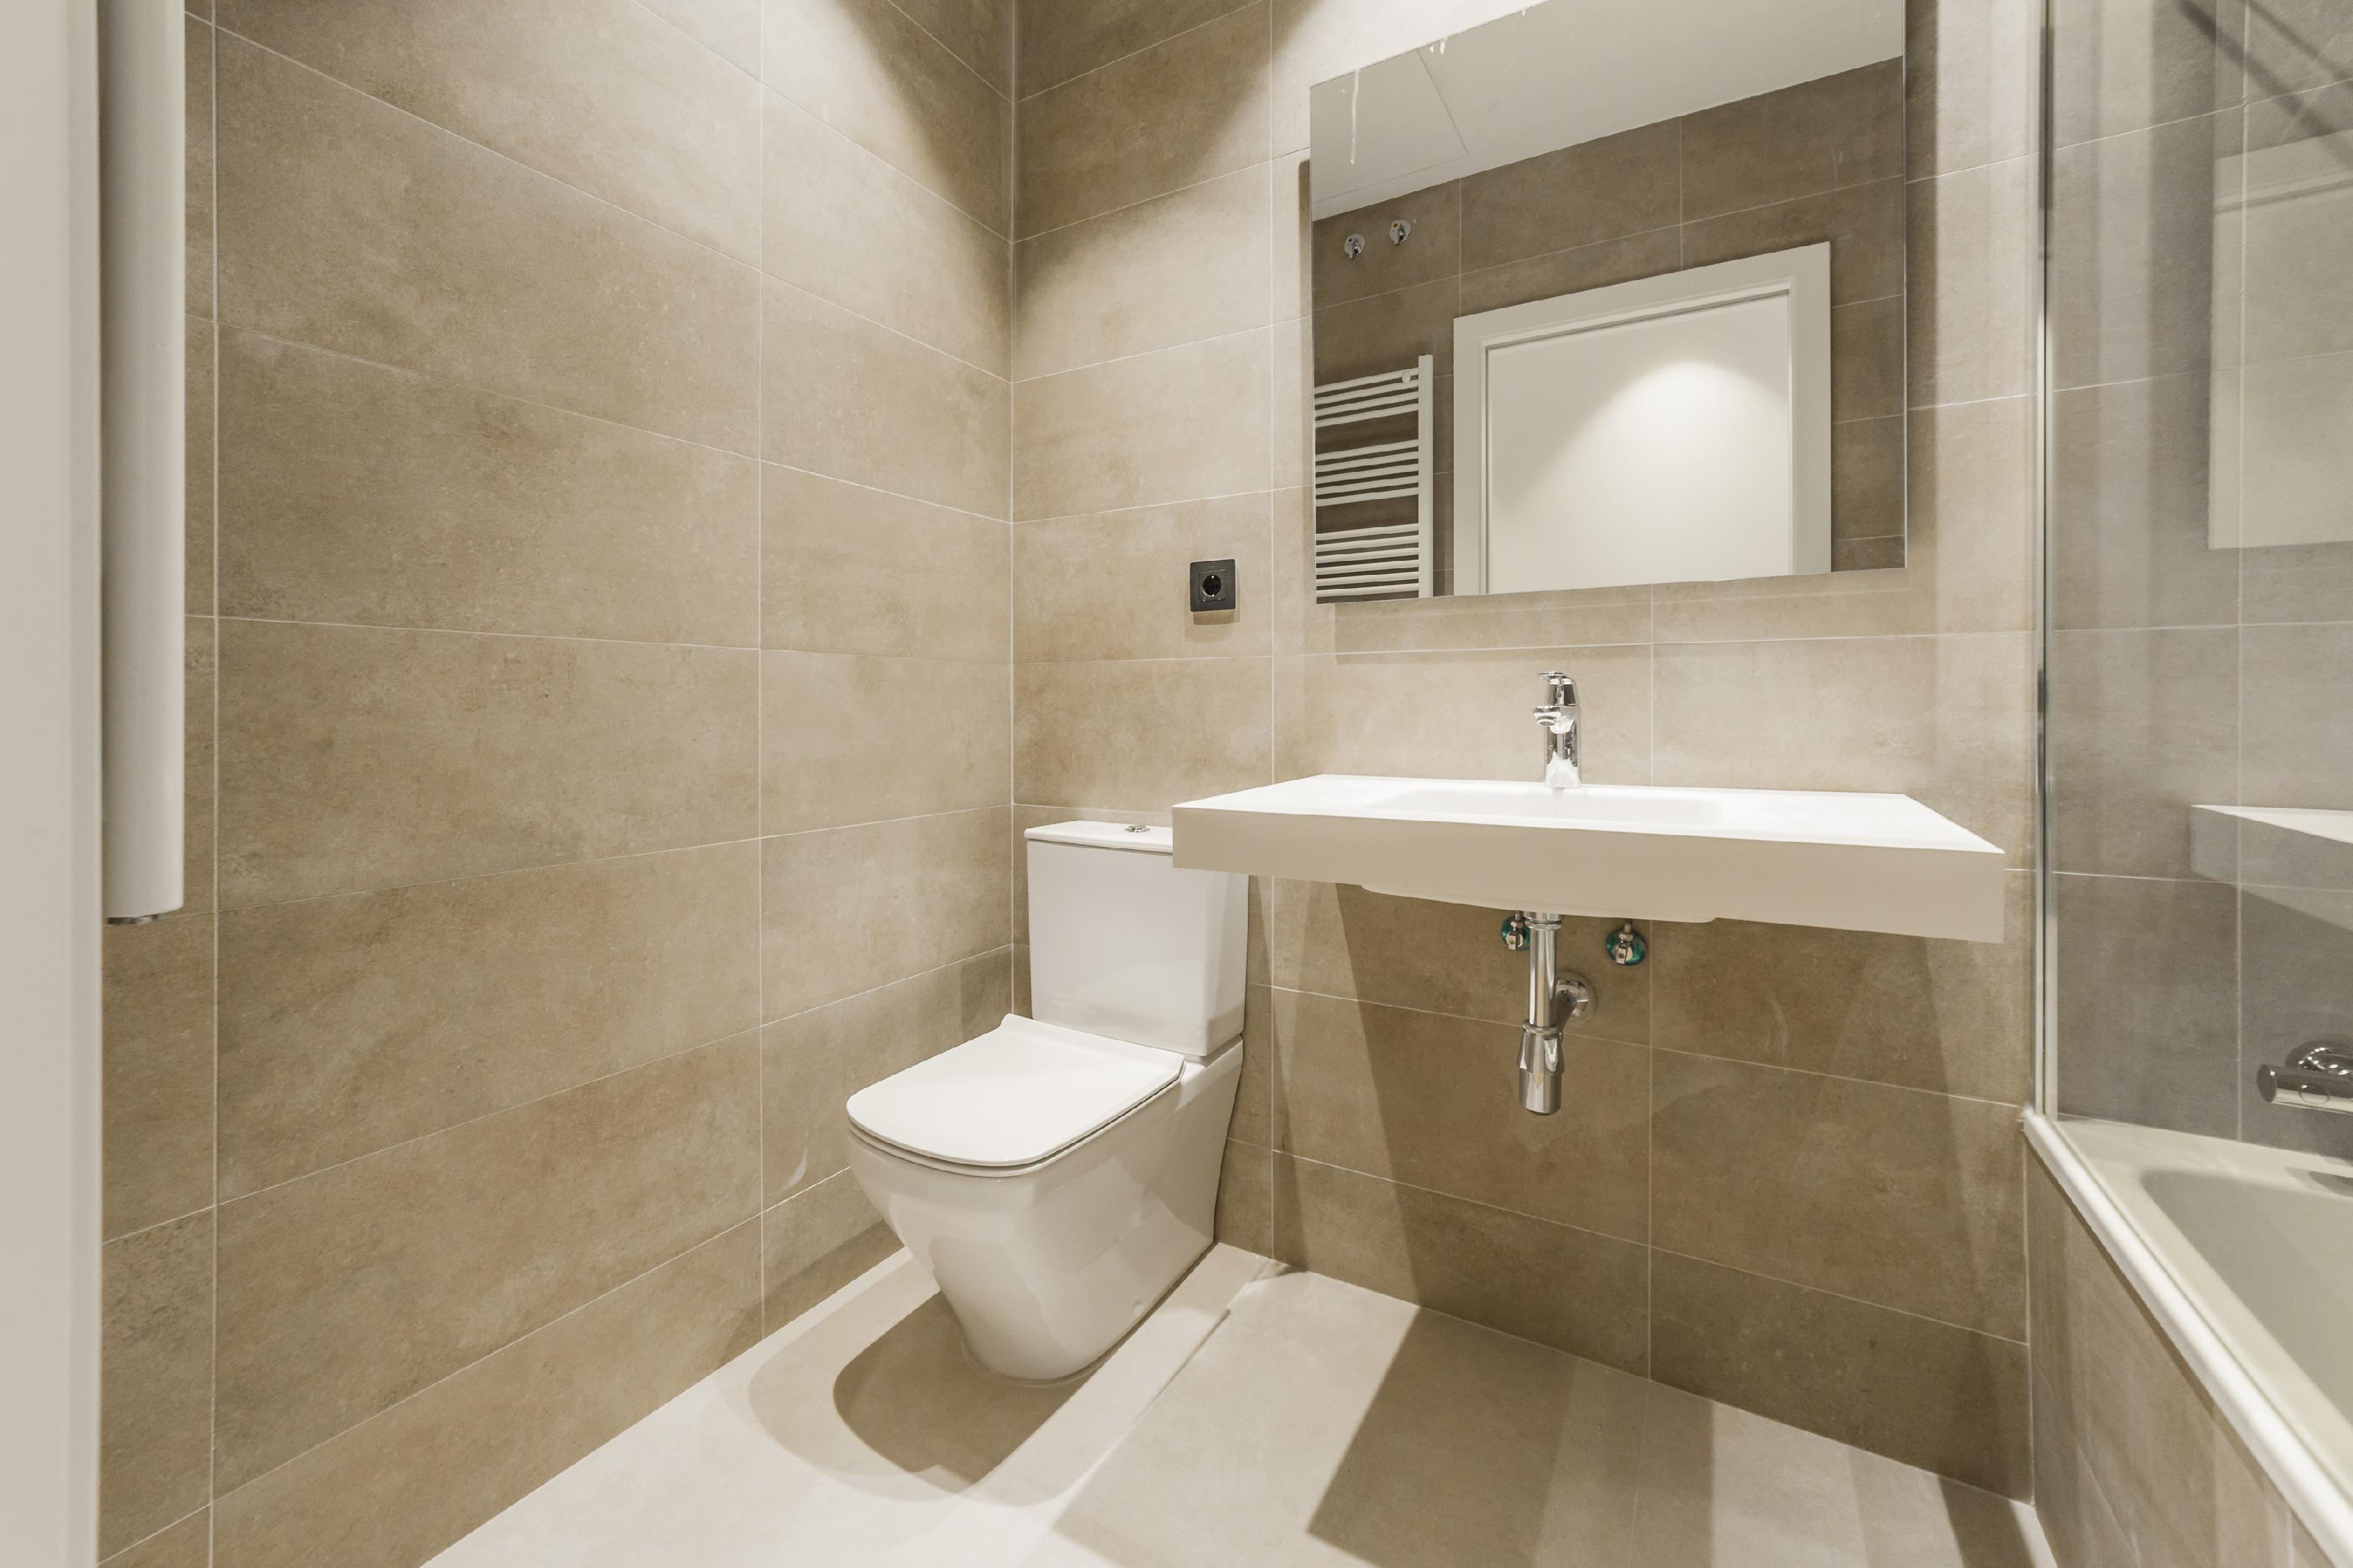 182176 Apartment for sale in Eixample, Old Left Eixample 29